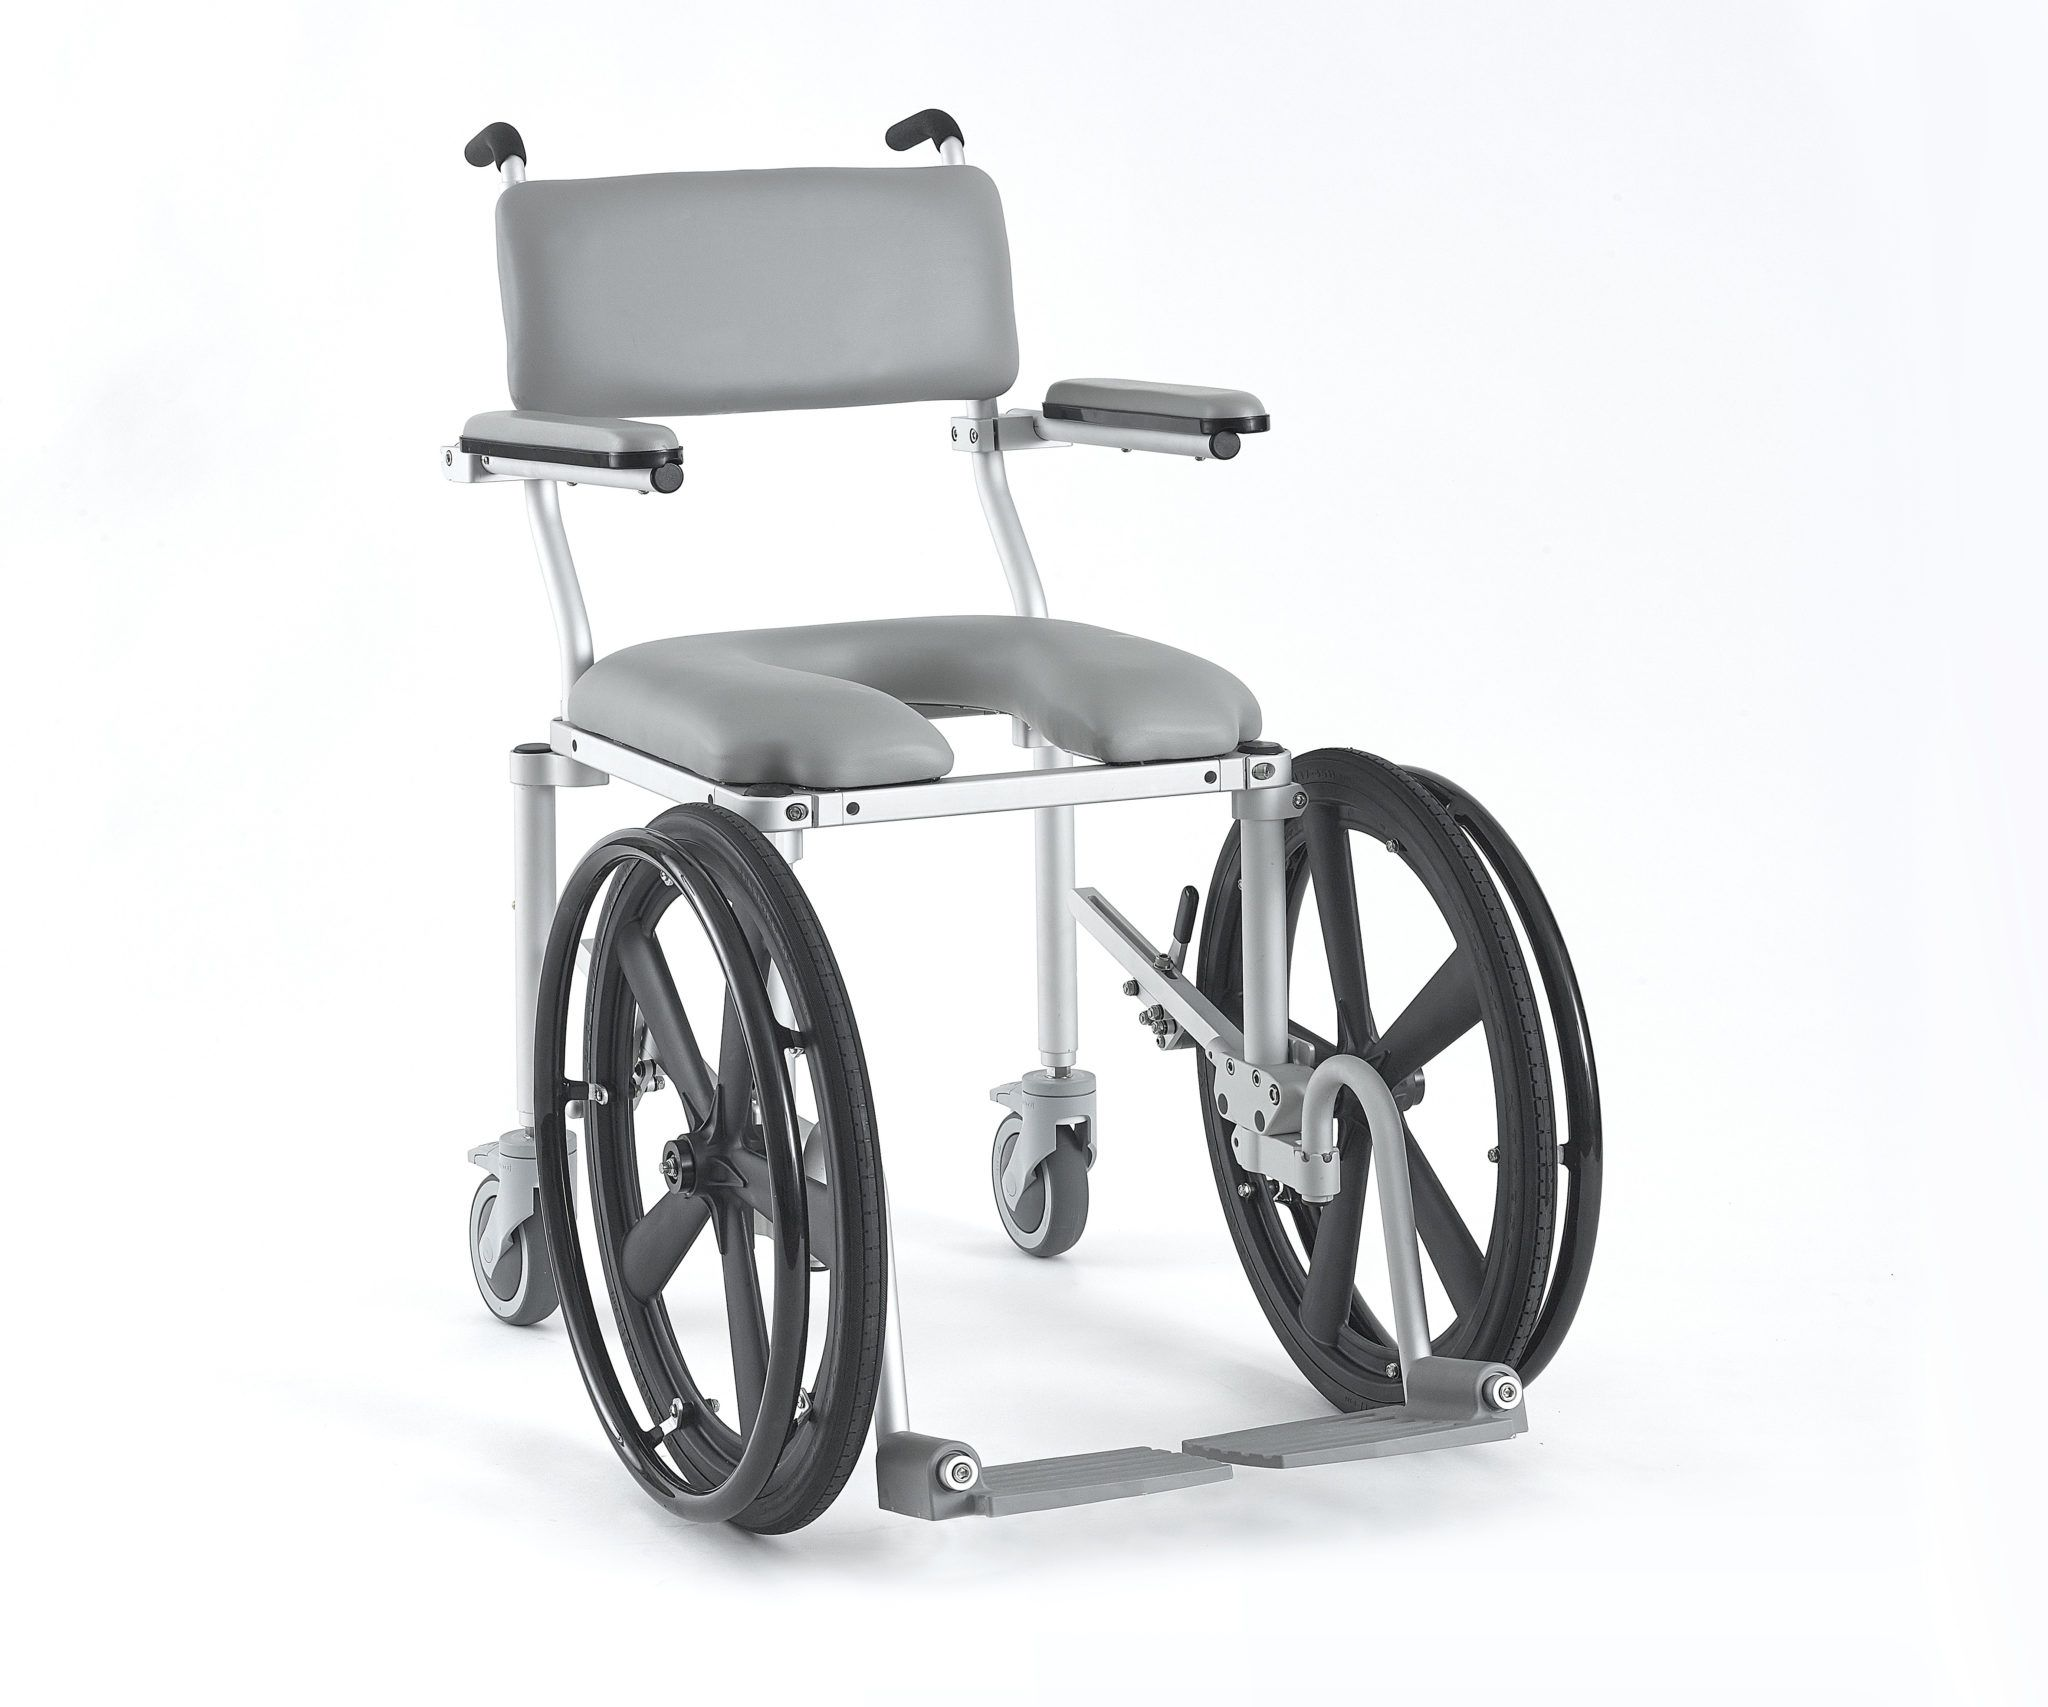 Mc4020rx Self Propelled Shower And Commode Chair Commode Chair Wheelchair Cushions Shower Wheelchair